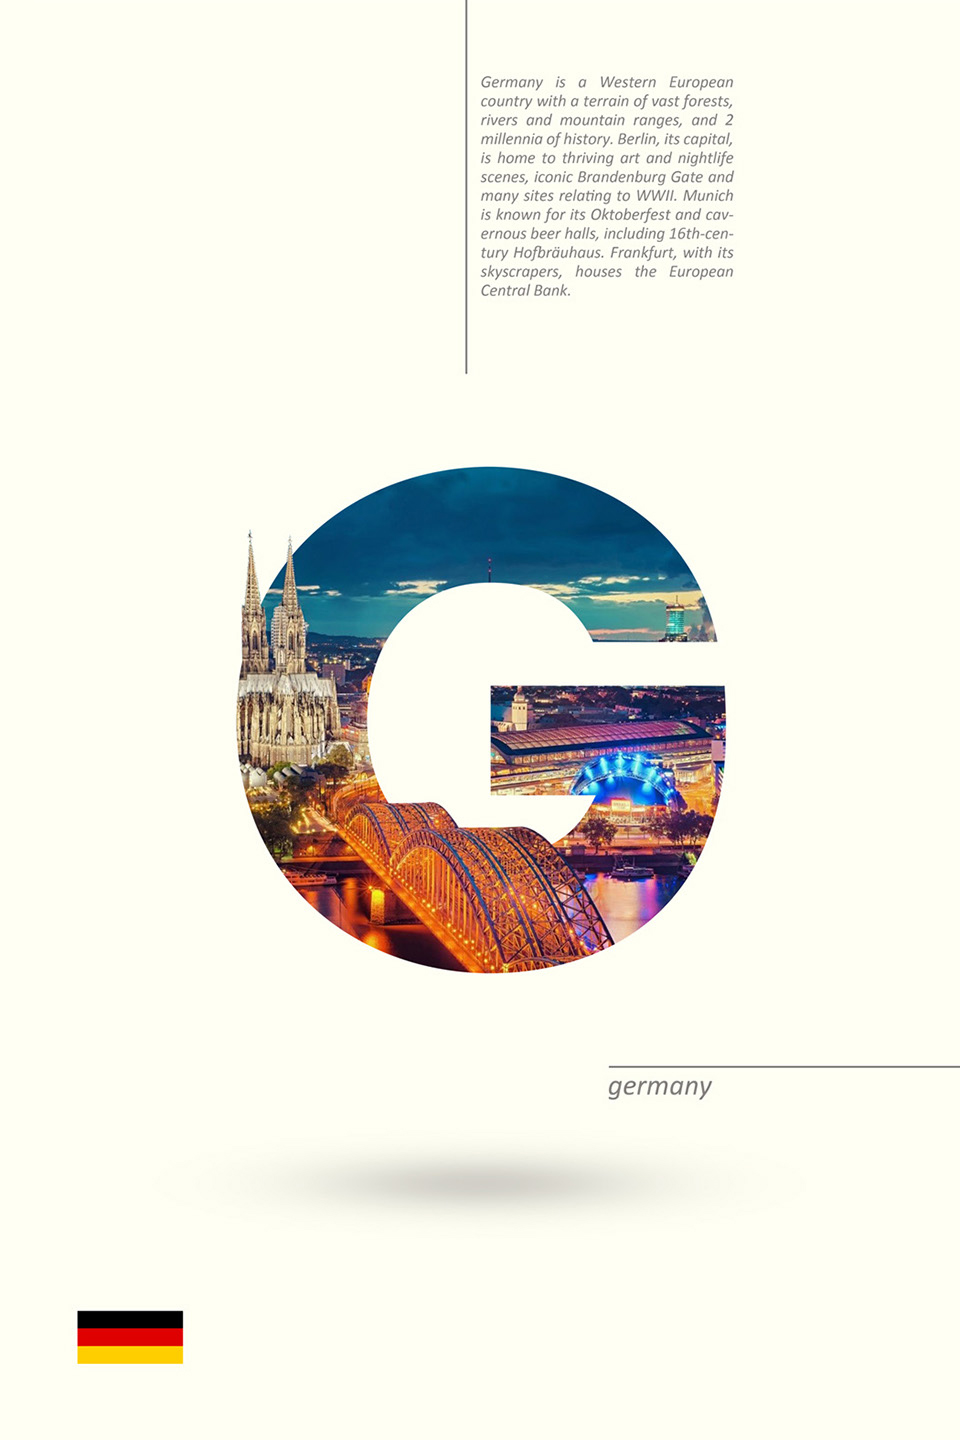 Beautiful Alphabet Series Of Countries And Their Iconic Landmarks - Germany